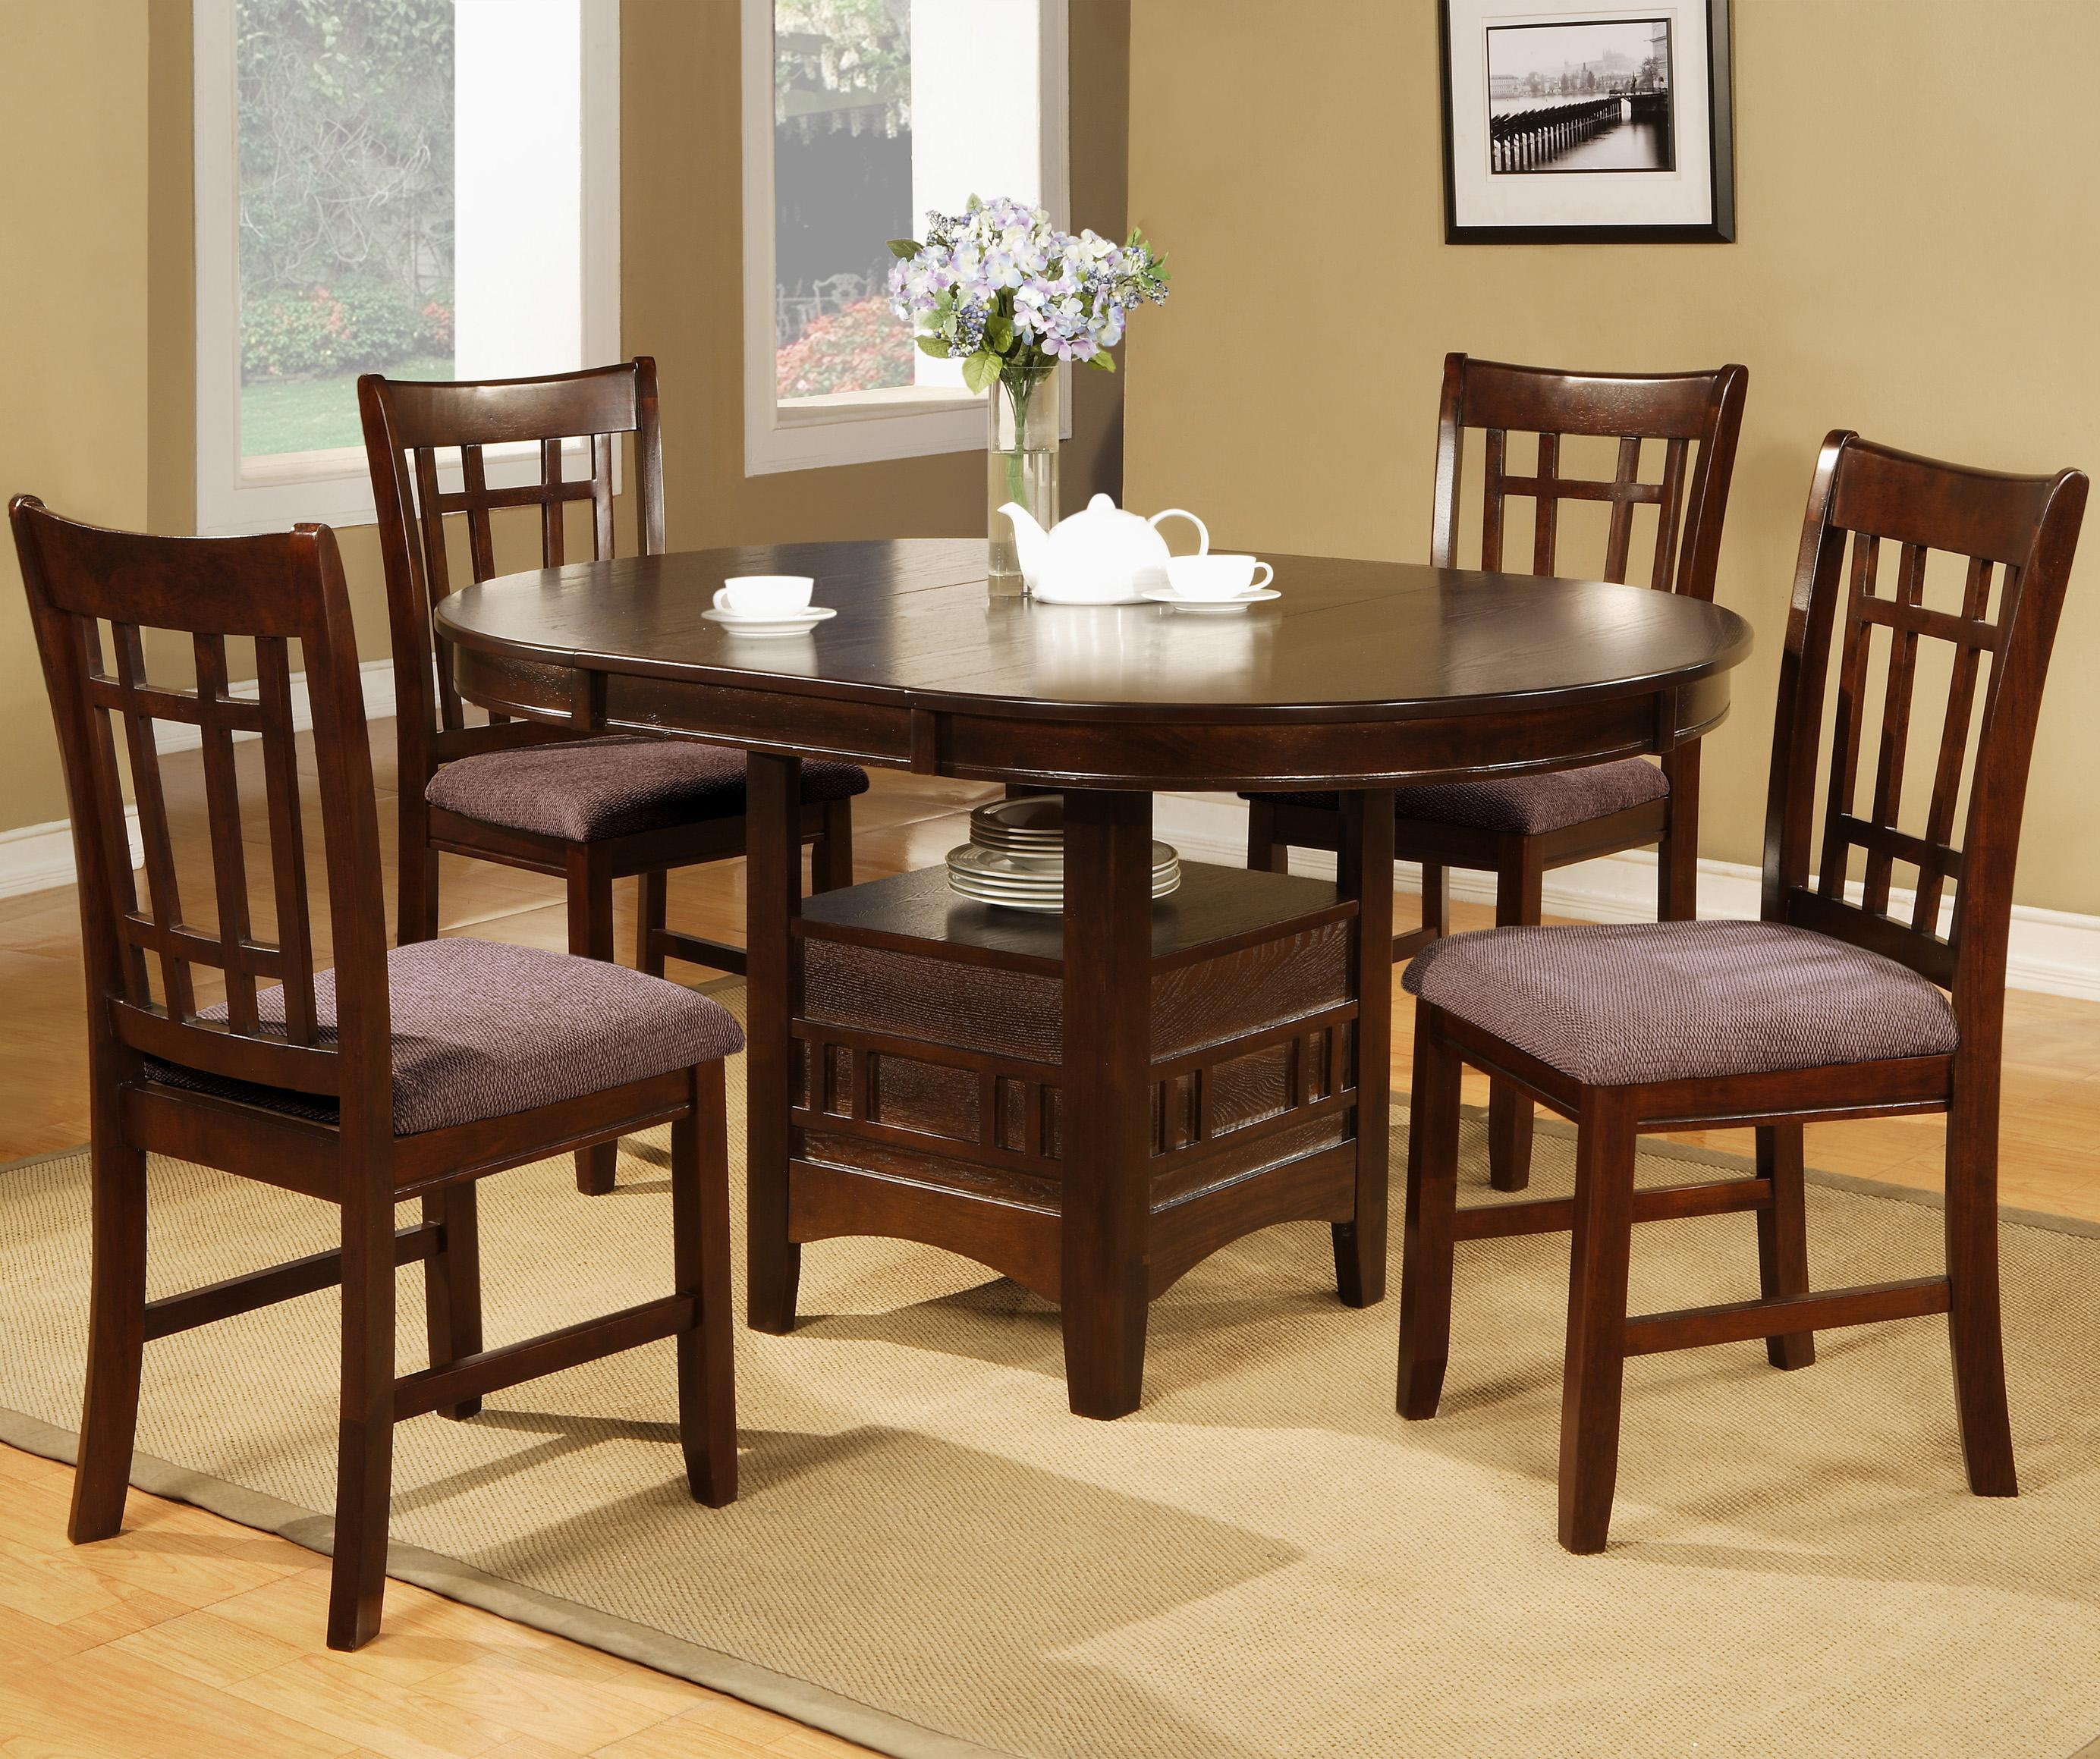 Crown Mark Empire 5 Piece Table U0026 Chair Set   Item Number: 2155 4260